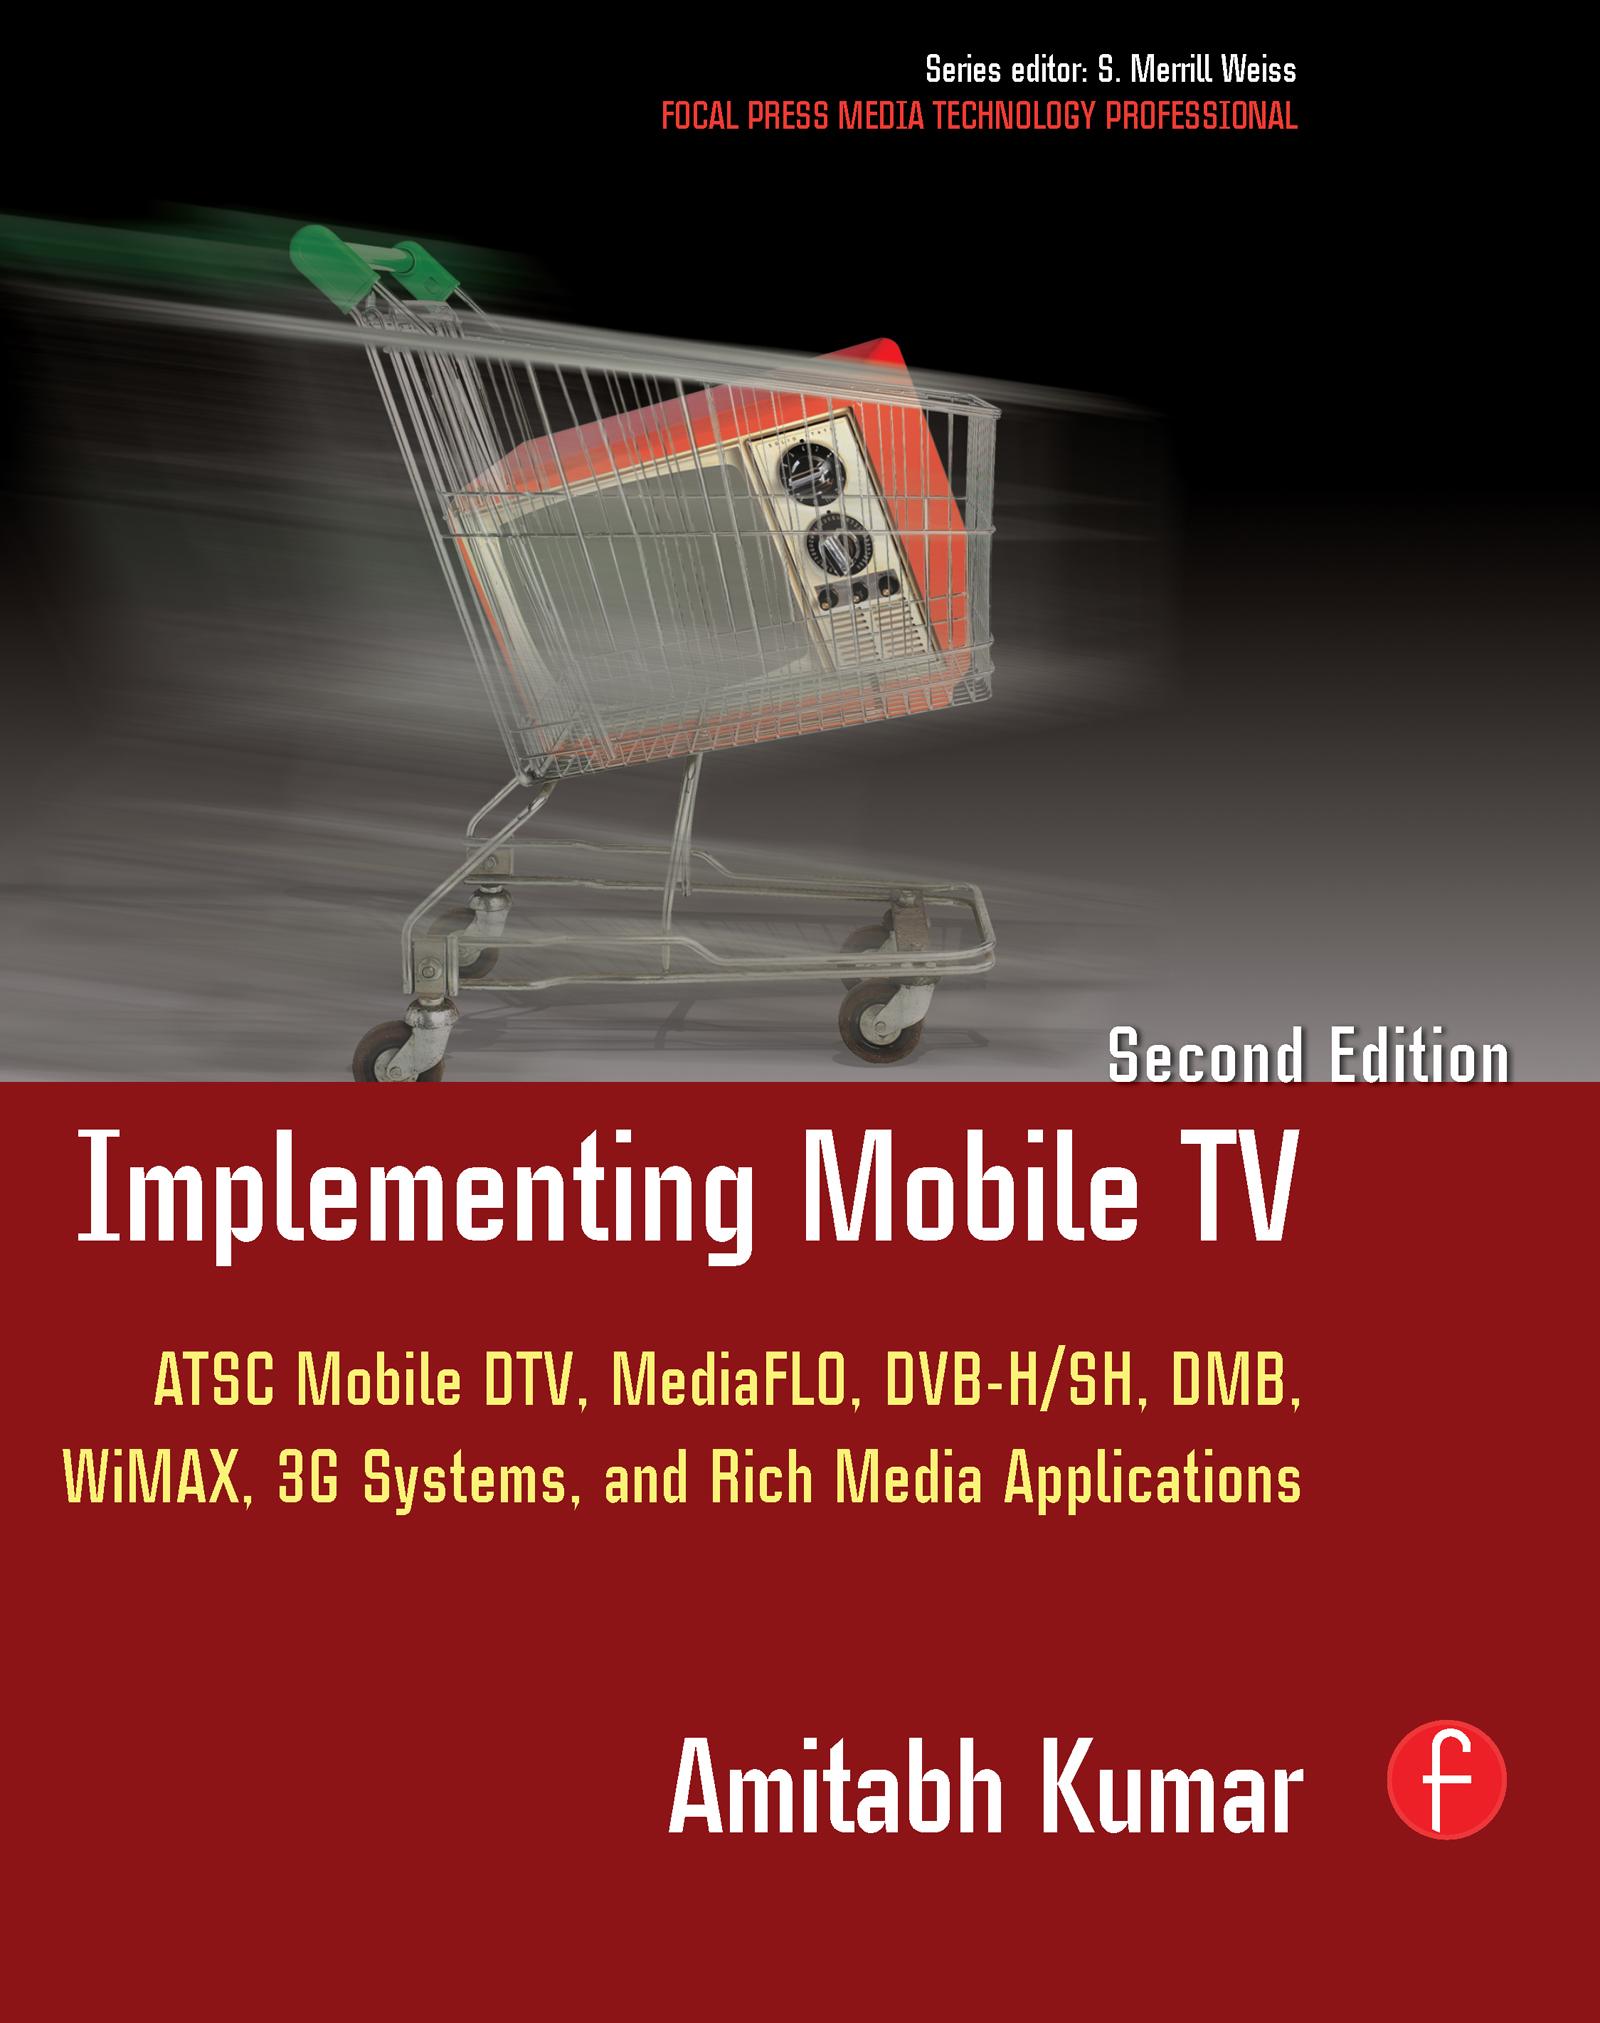 Implementing Mobile TV: ATSC Mobile DTV, MediaFLO, DVB-H/SH, DMB,WiMAX, 3G Systems, and Rich Media Applications book cover